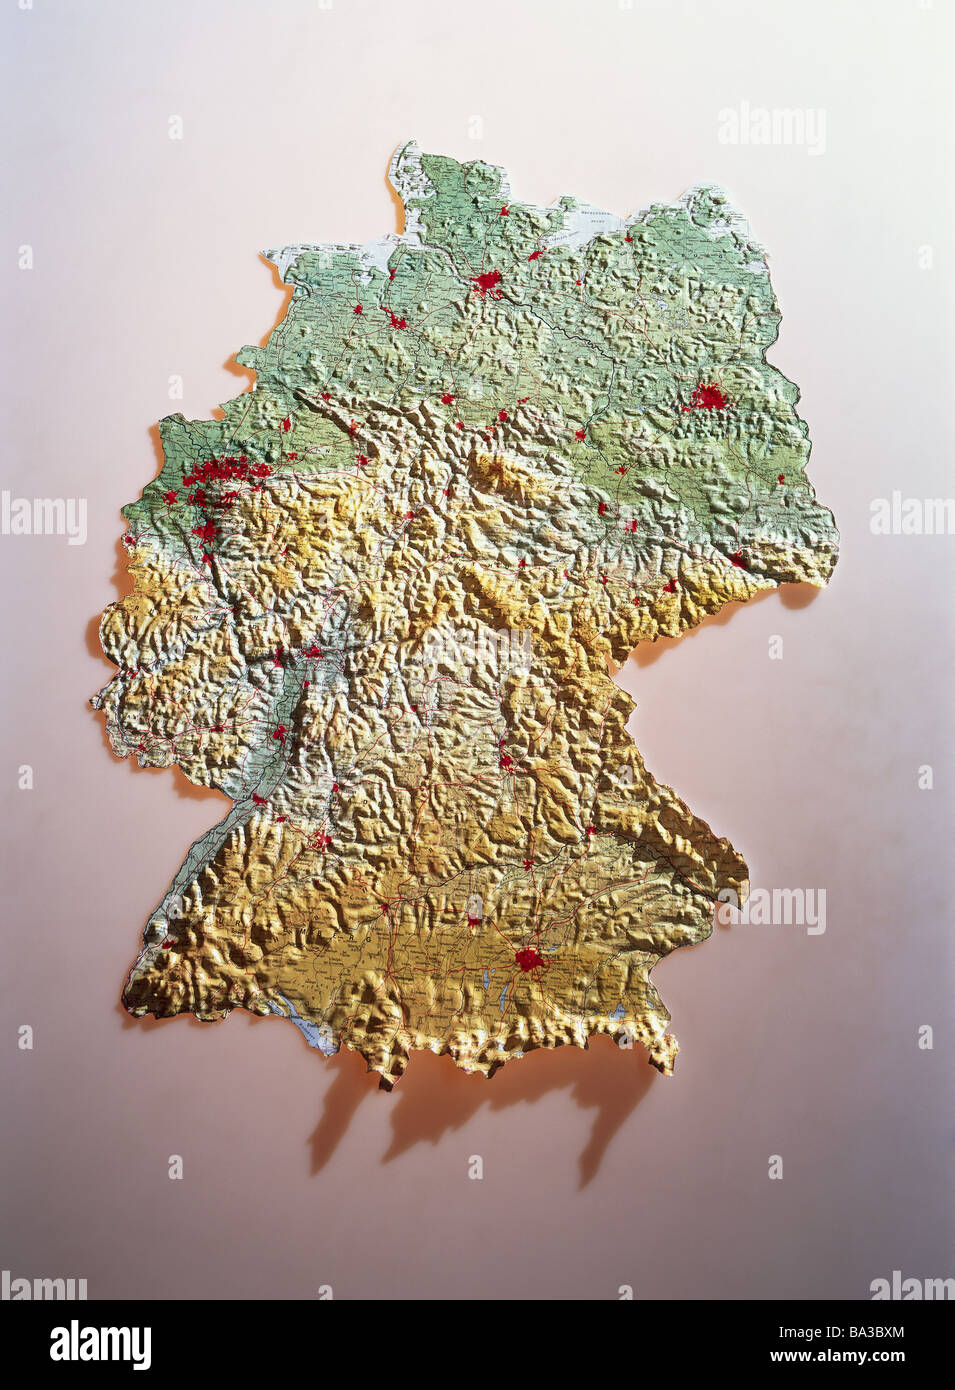 Map Of Germany Mountains.Map Germany 3d Three Dimensional Card Federal Republic Frg Stock